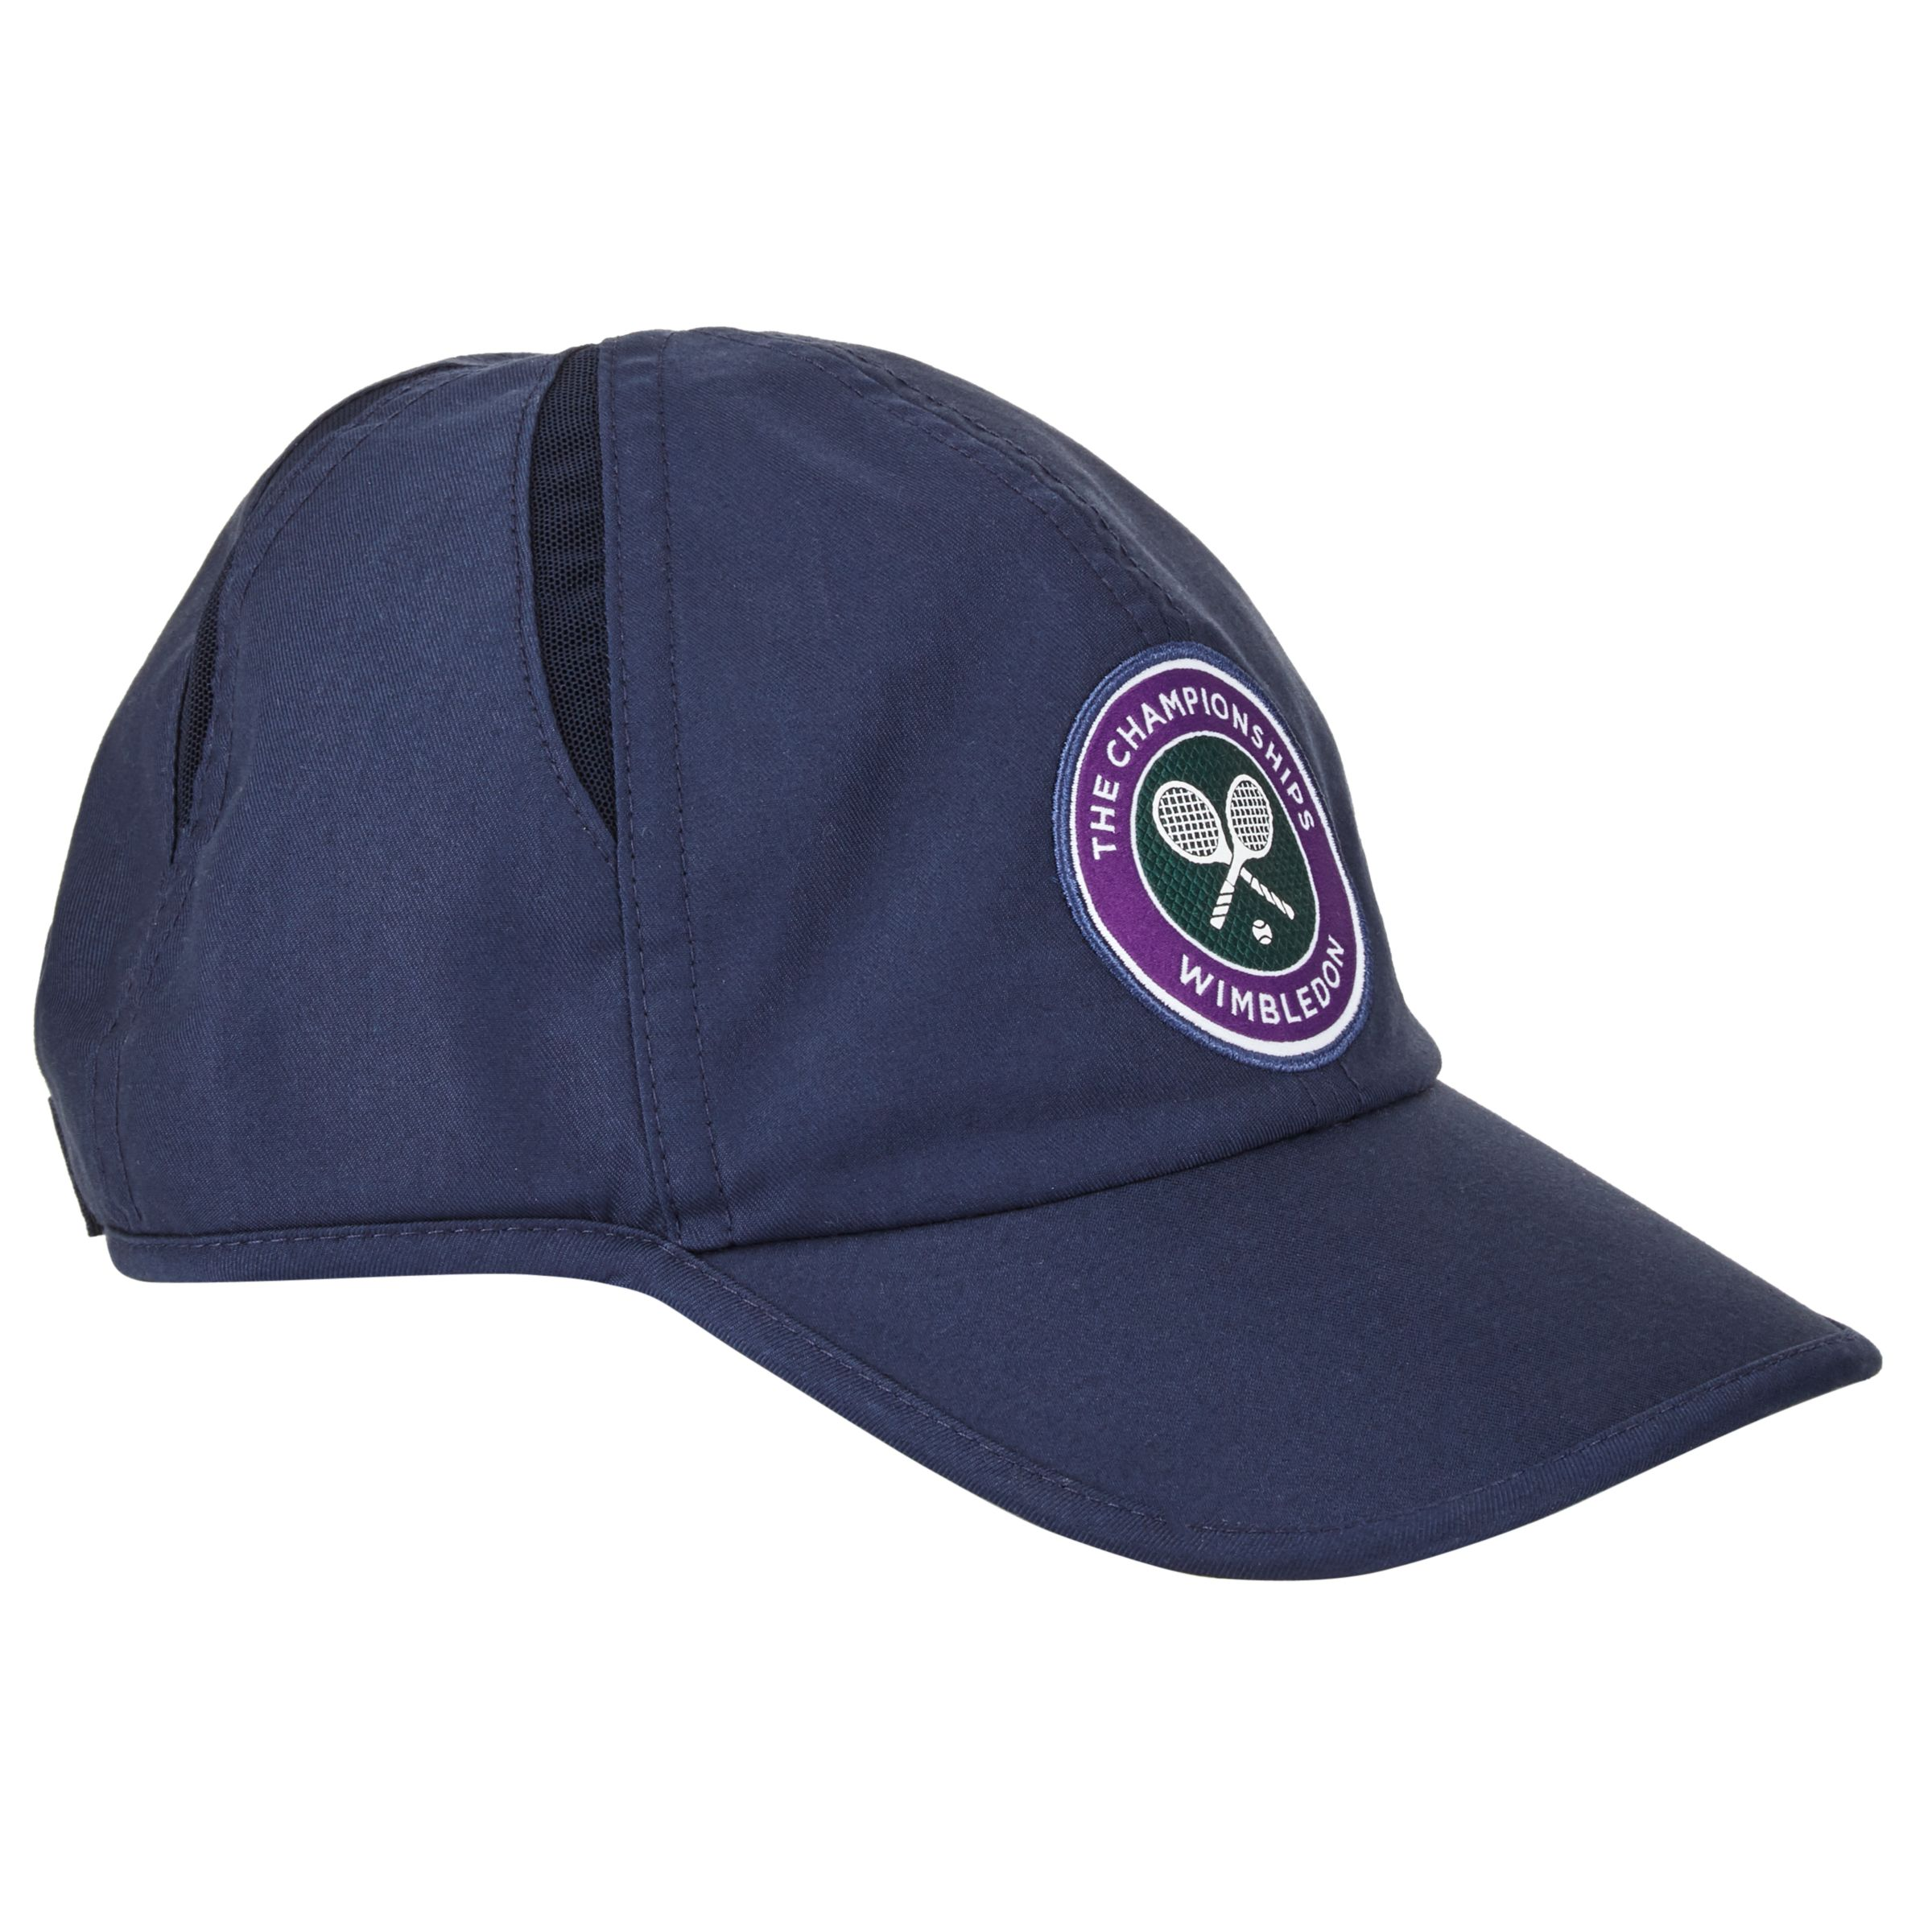 Polo Ralph Lauren Wimbledon Cross Court Cap 5a4f3e624e9